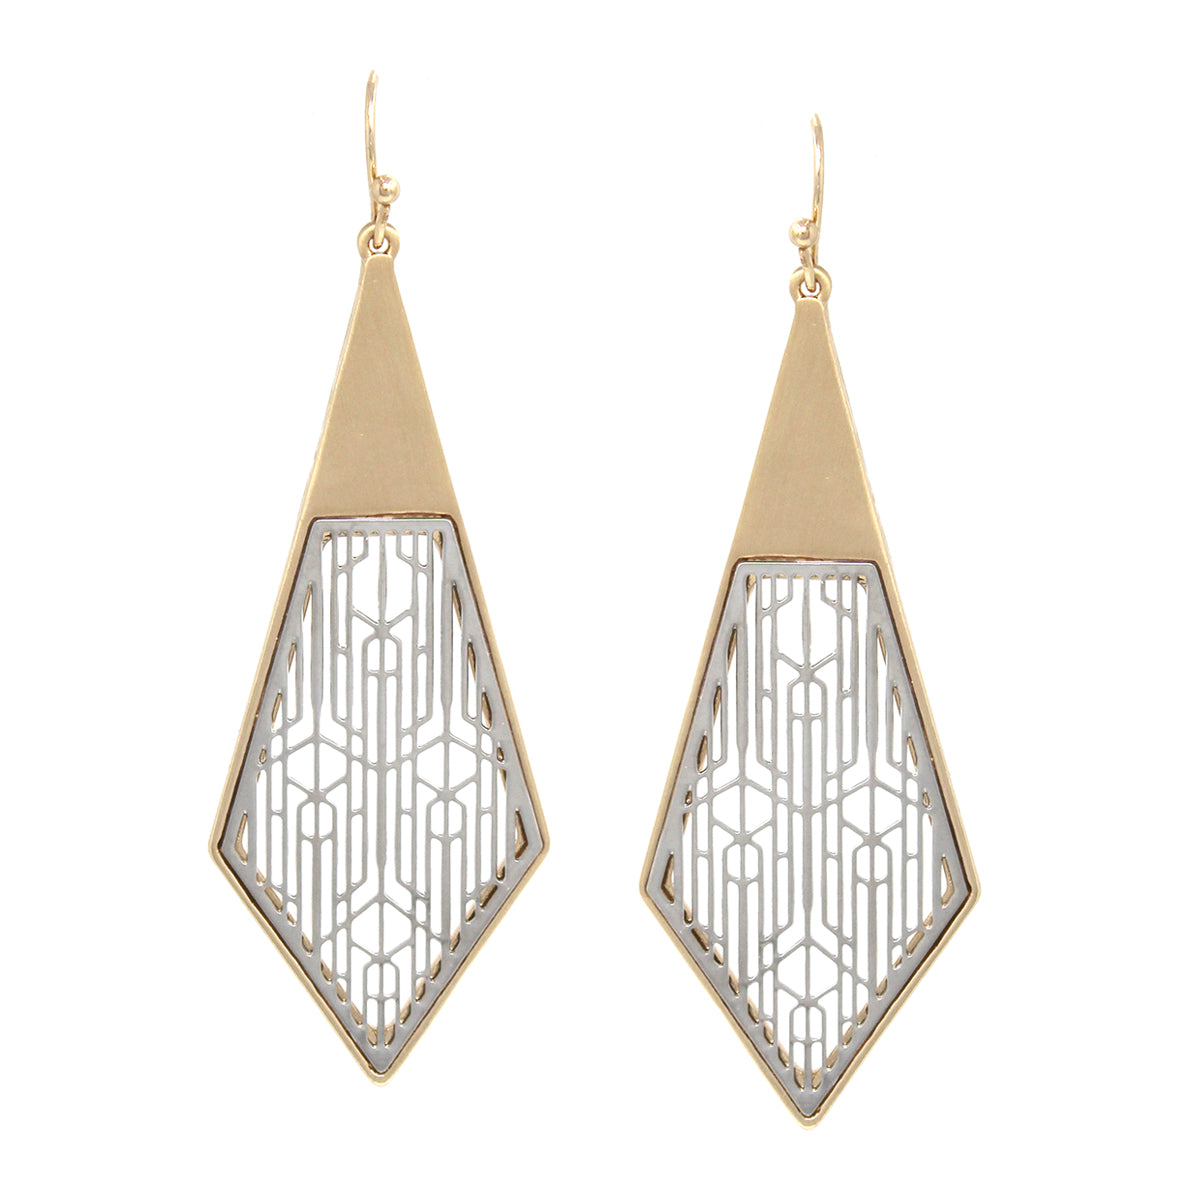 Filigree Laser Cutout Rhombus Shape Drop Earrings